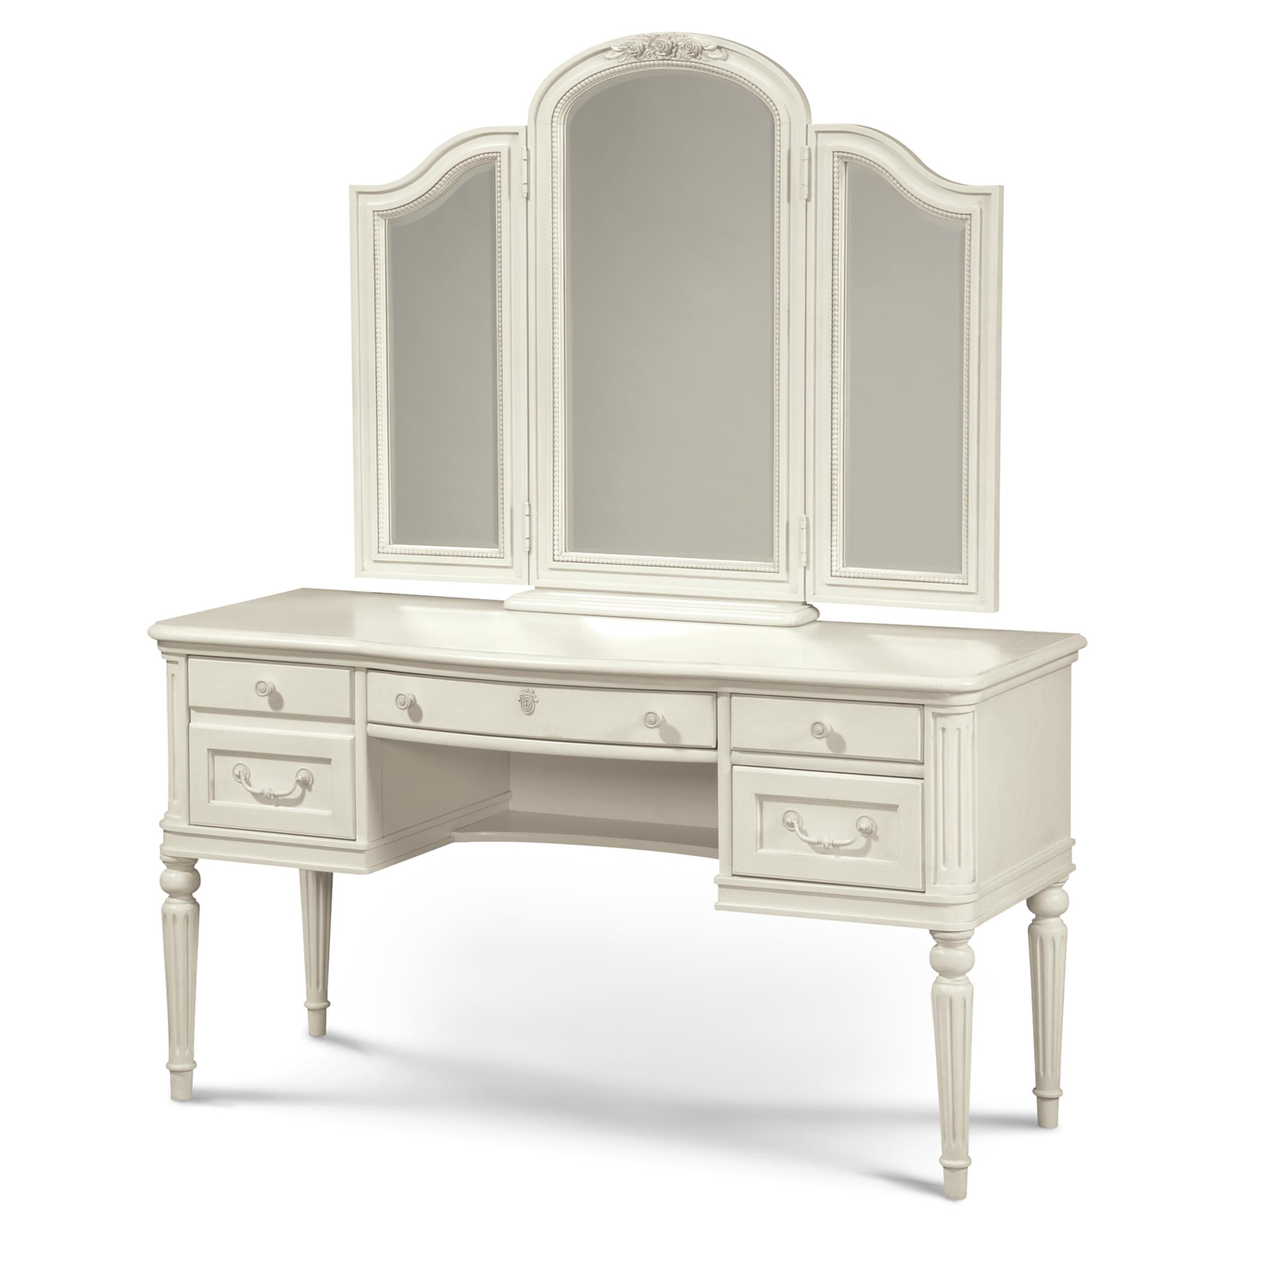 Rosalie Kids Vanity Desk - White | Zin Home